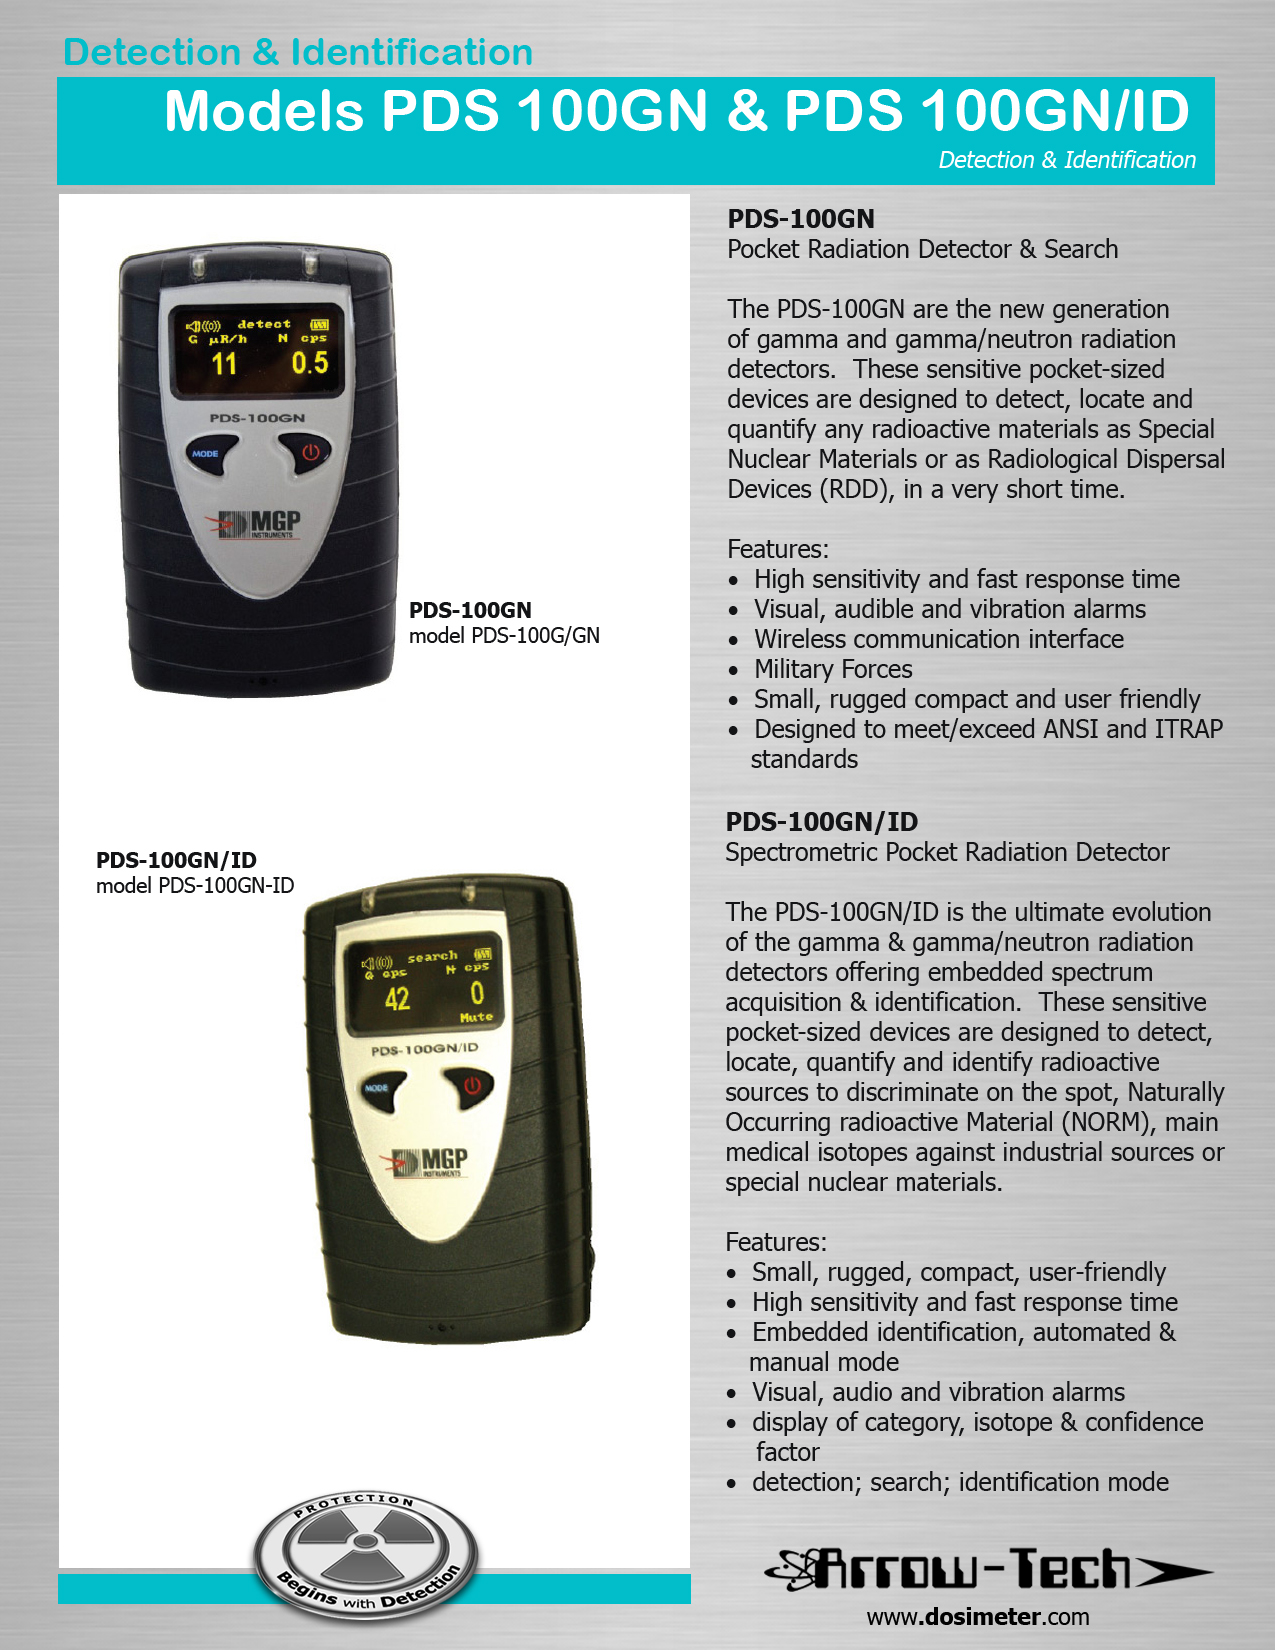 the different radiation detectors used in identifying radioactive isotopes potential national securi Massachusetts institute of technology report on the audit of federal financial assistance programs in accordance with the uniform guidance for the year ended june 30, 2017 table.